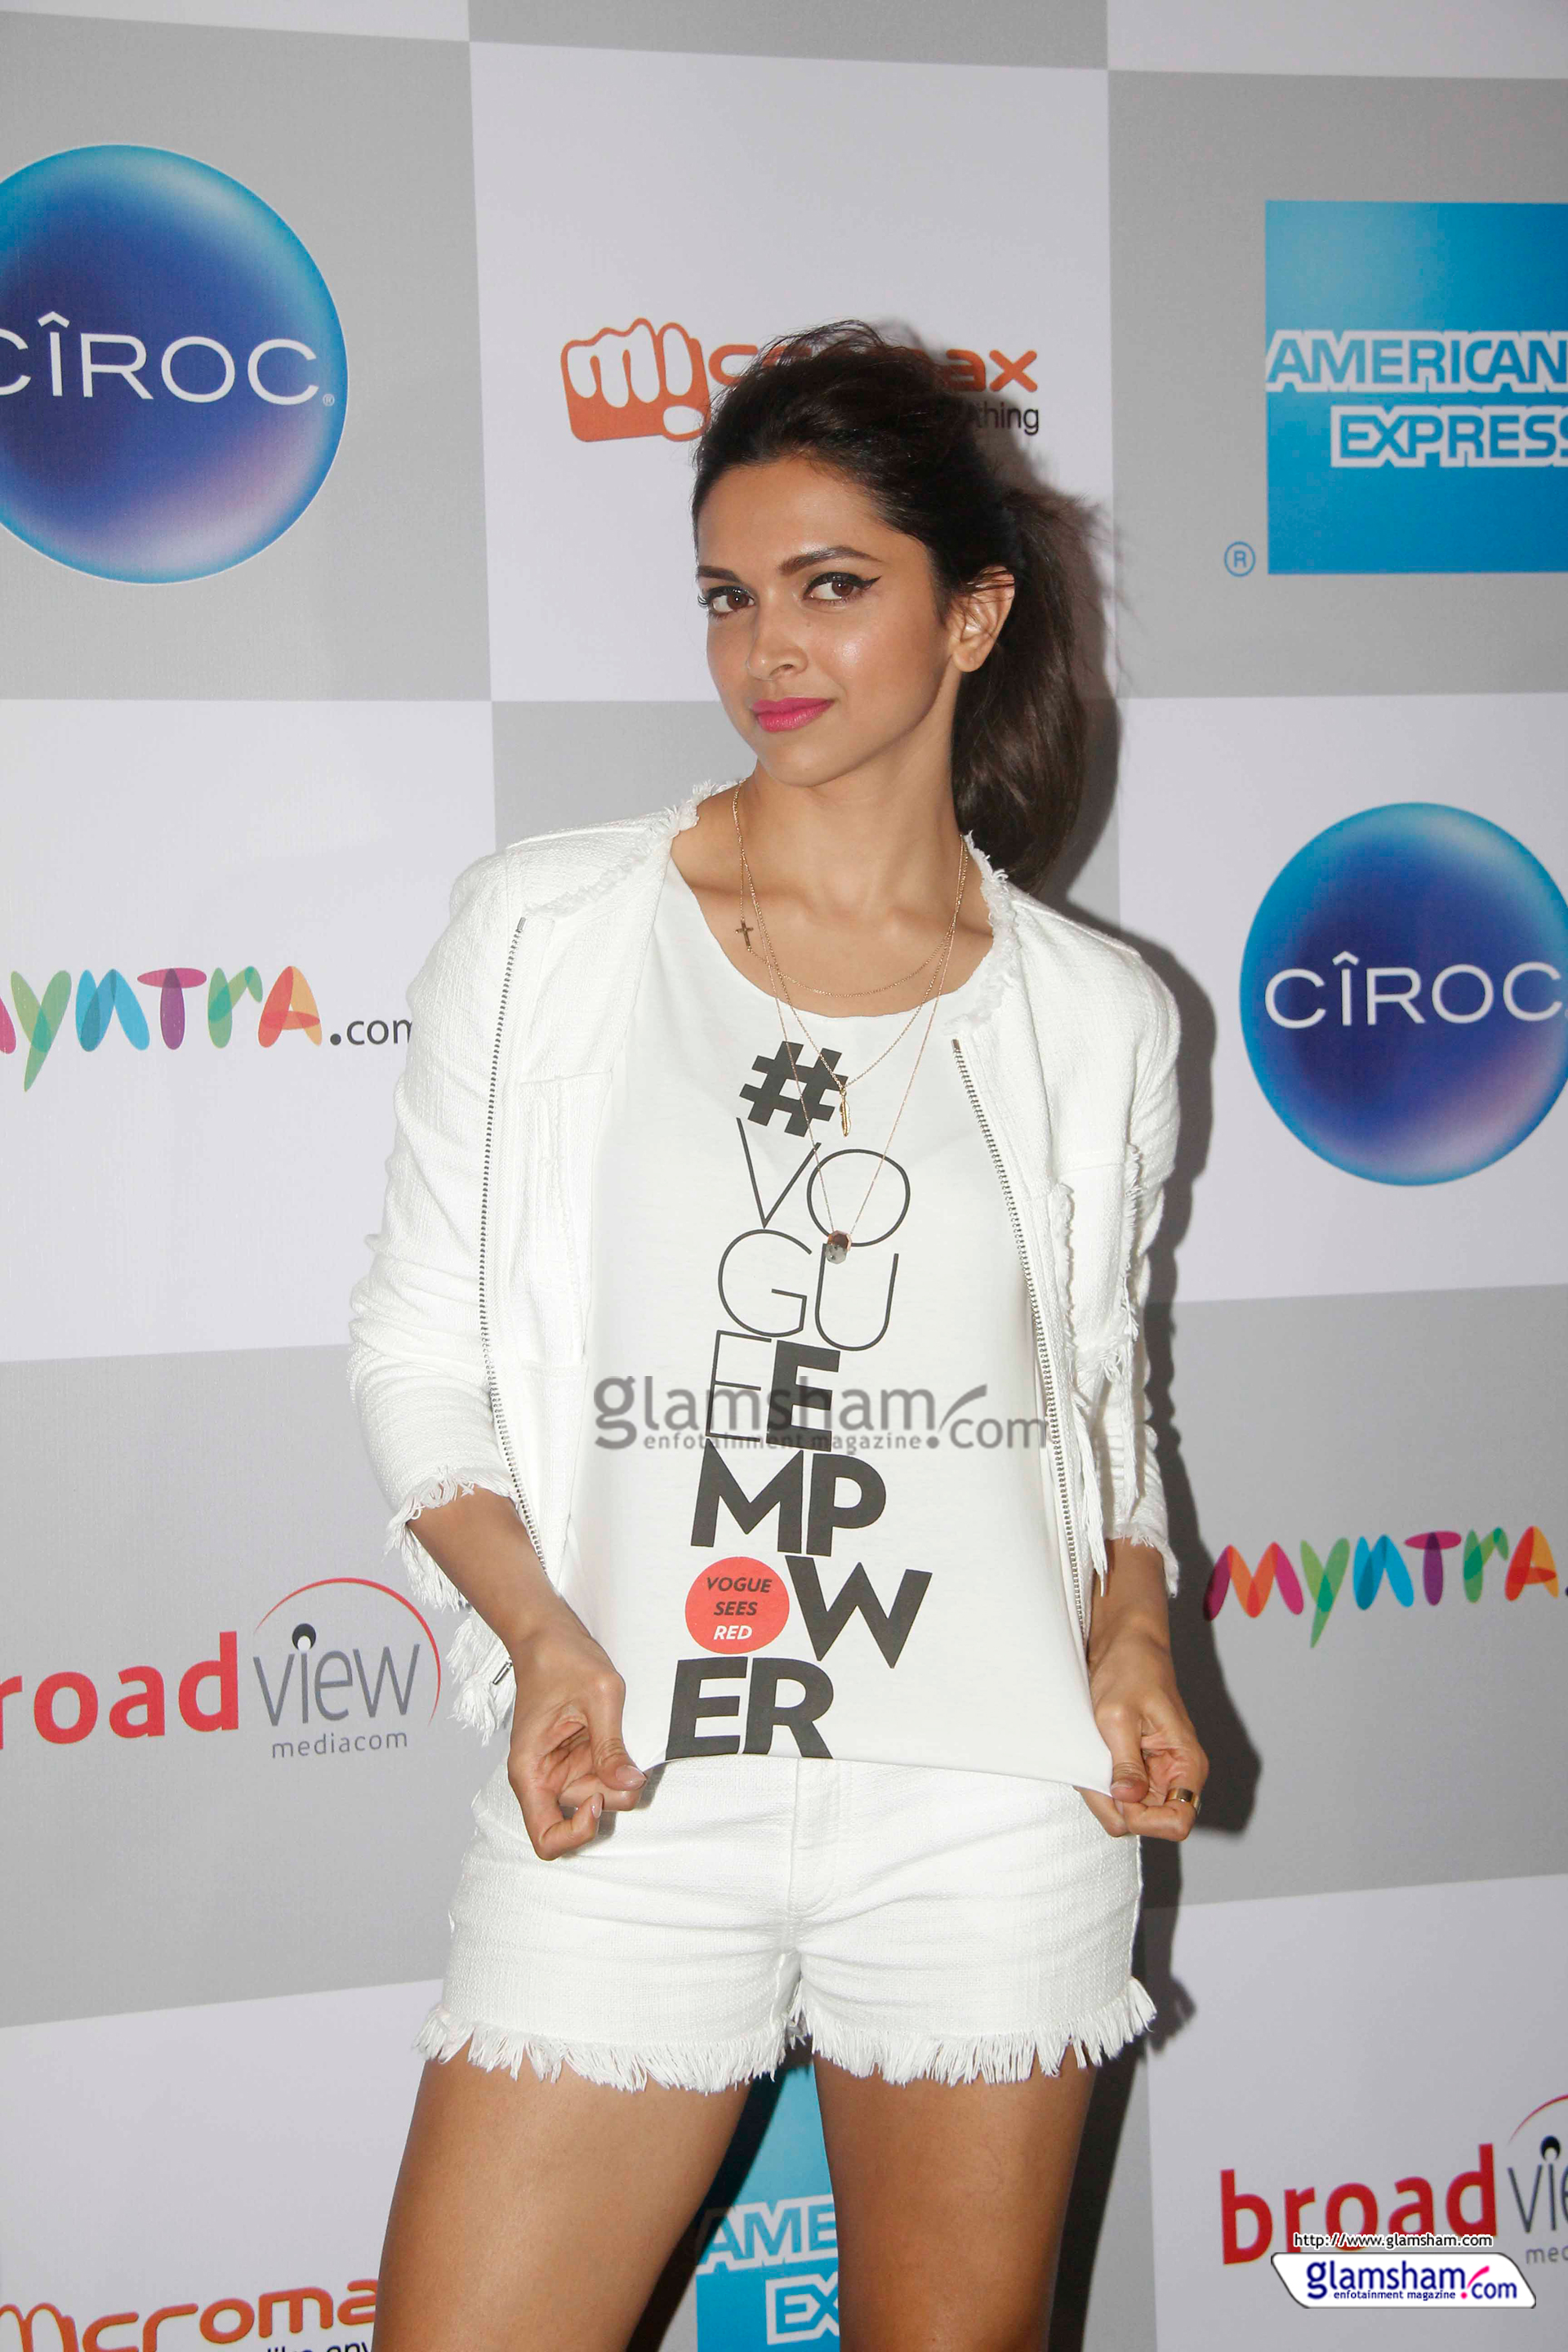 Photo Of Deepika Padukone 811385 Upload Date 2015 11 12 Number Votes 4 There Are 262 More Pics In The Gallery